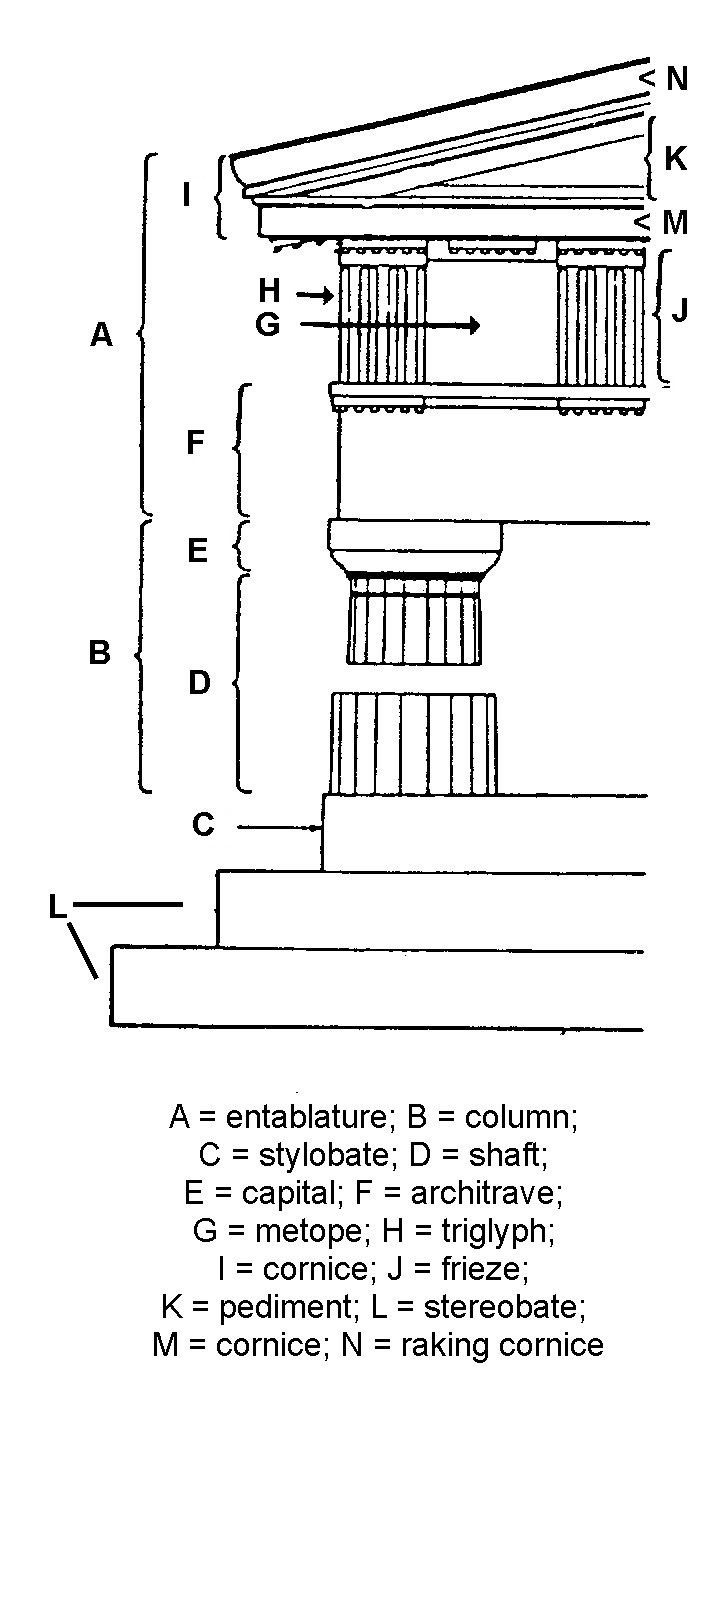 Greek Temple Plan: The best known symbol of ancient Greek ...